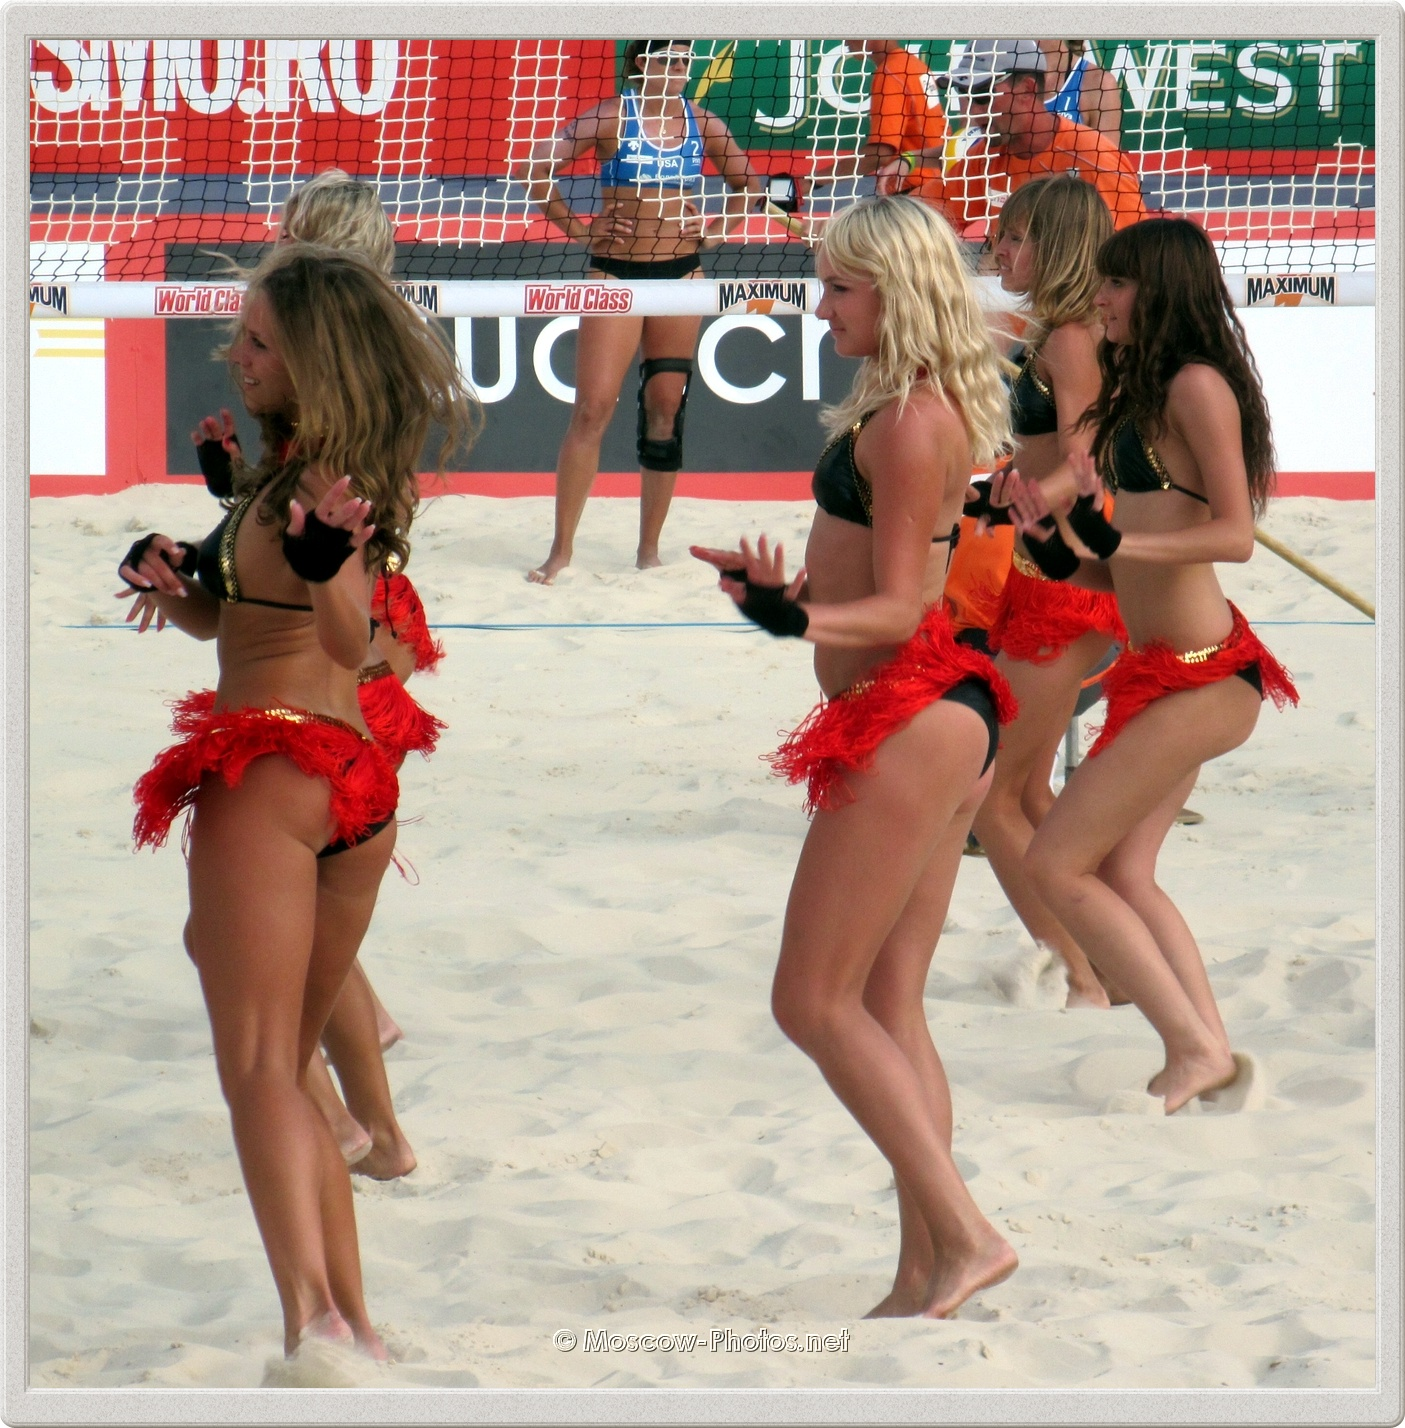 Dancing Beach Volleyball Bikini Girls